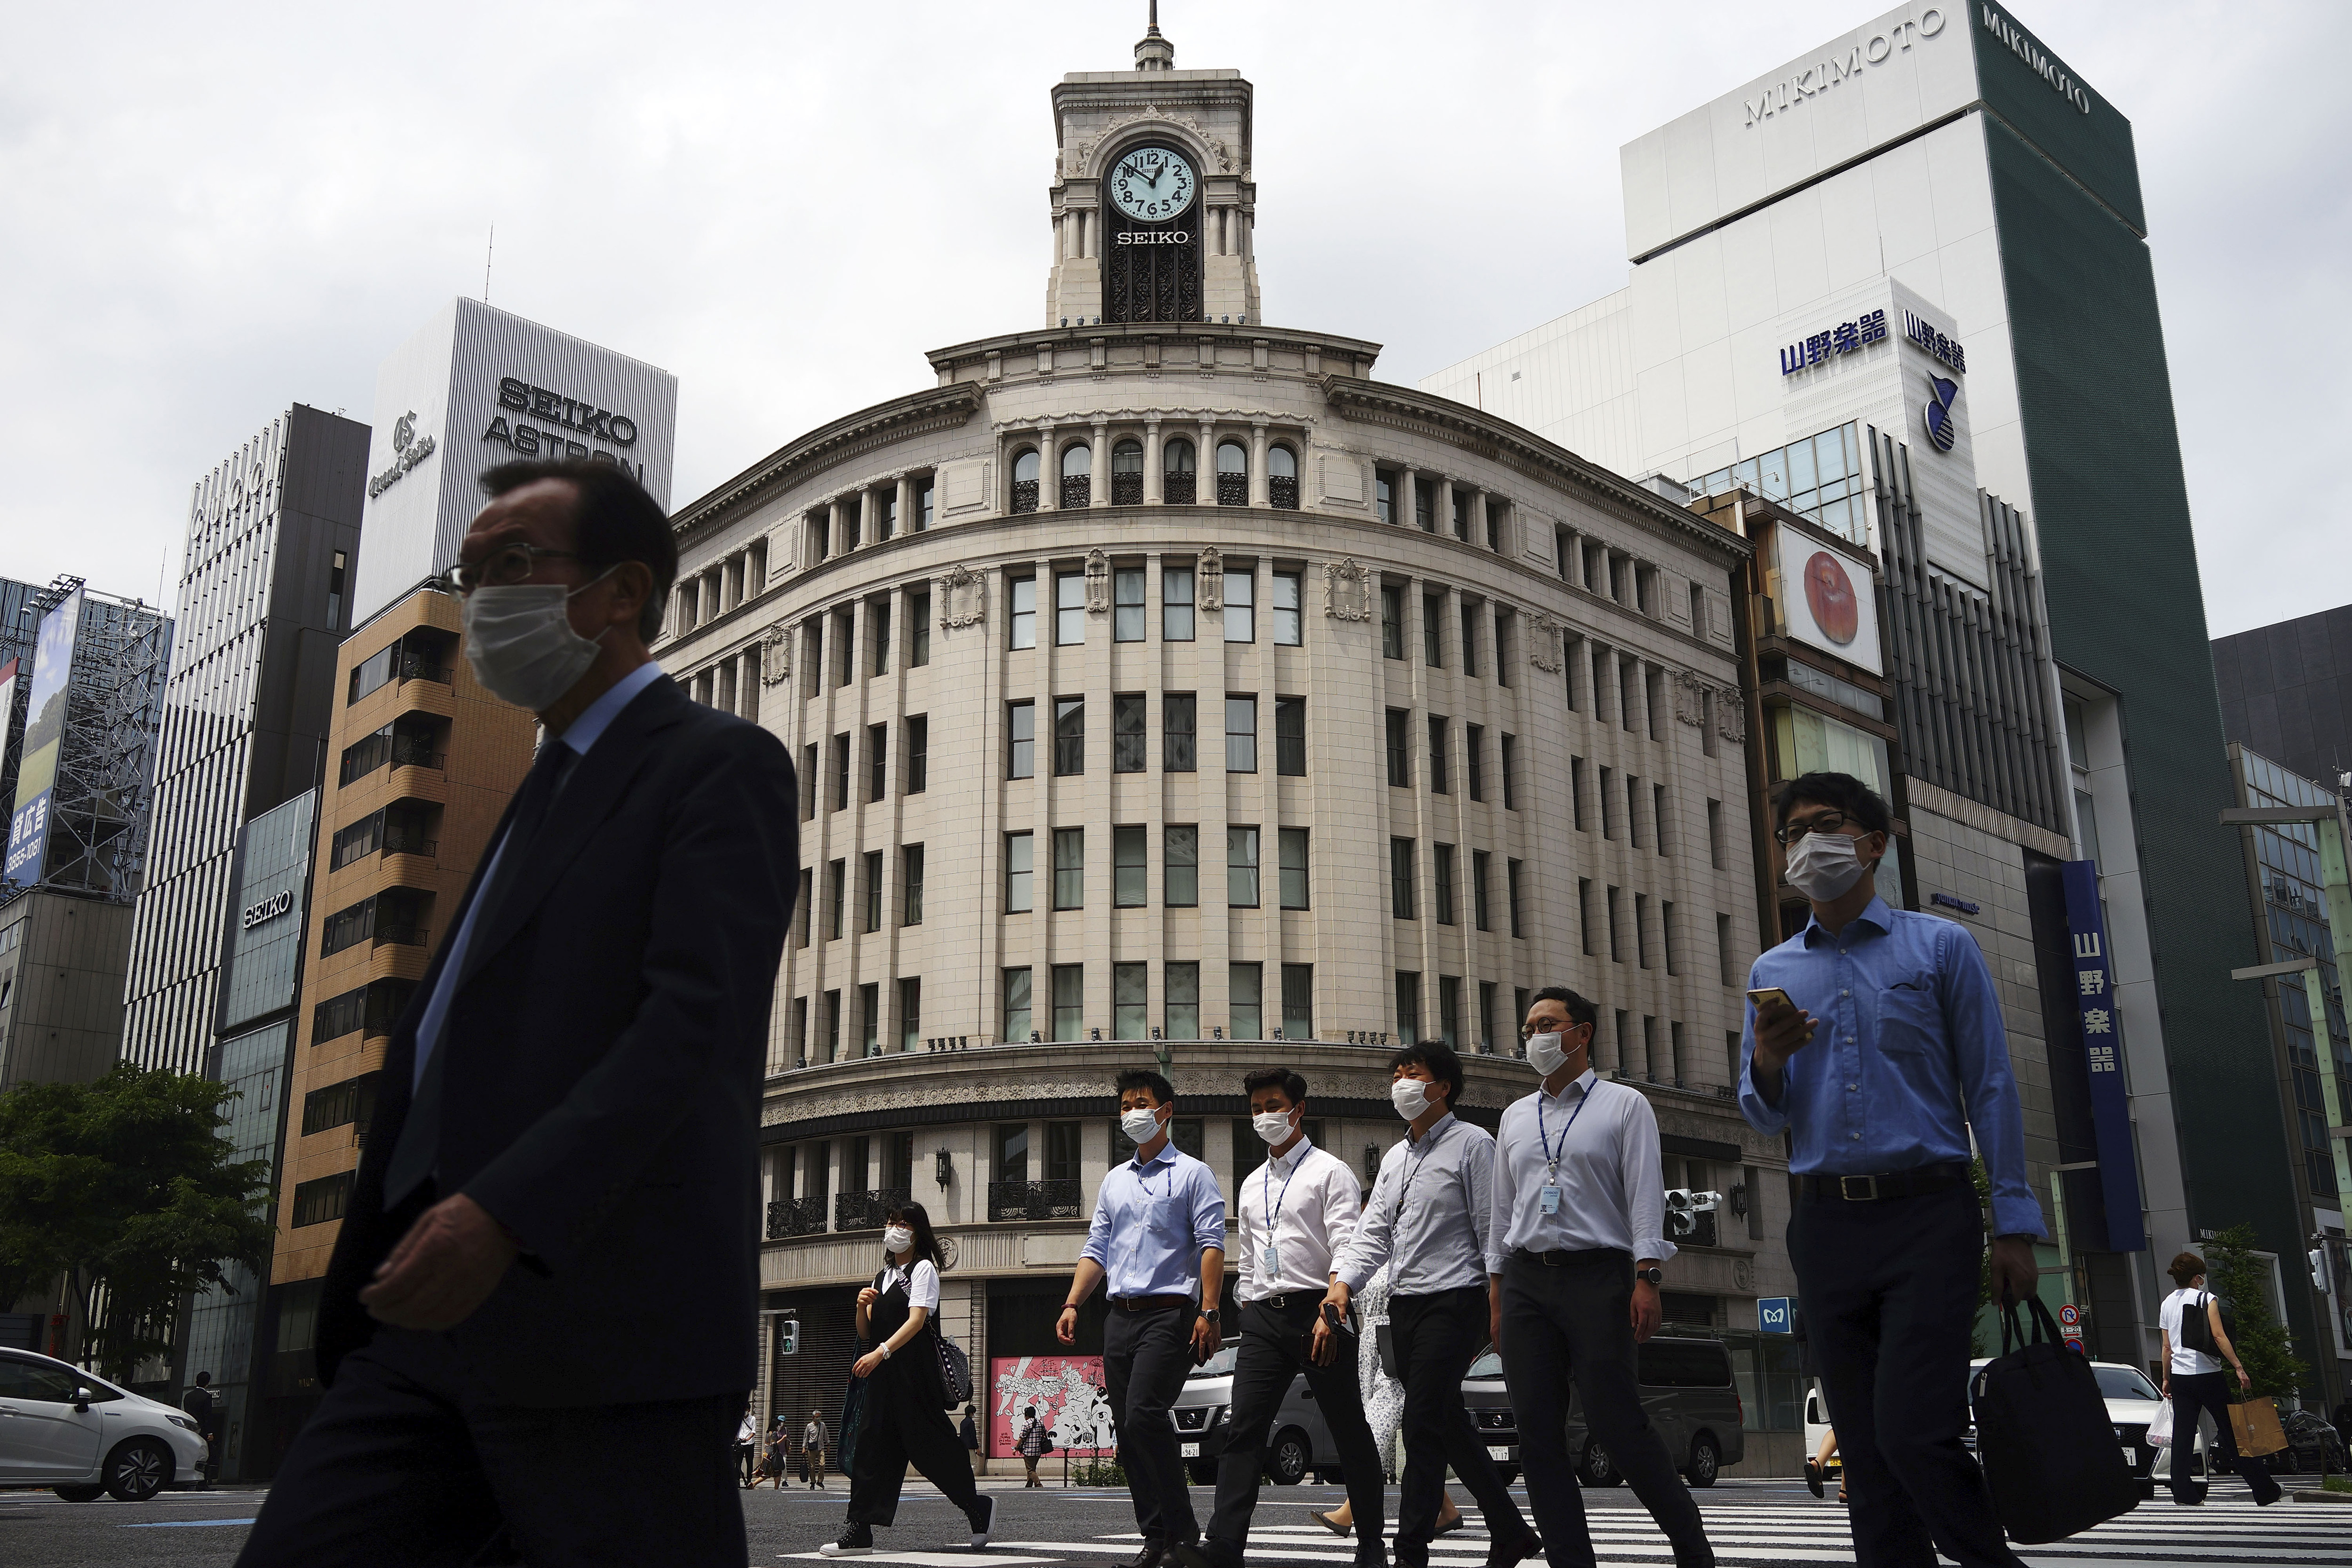 People wearing face masks to help curb the spread of the coronavirus walk at Ginza shopping district in Tokyo Tuesday, May 12, 2020. Japan is still under a coronavirus state of emergency which was extended until the end of May though there have been no hard lockdowns. (AP Photo/Eugene Hoshiko)